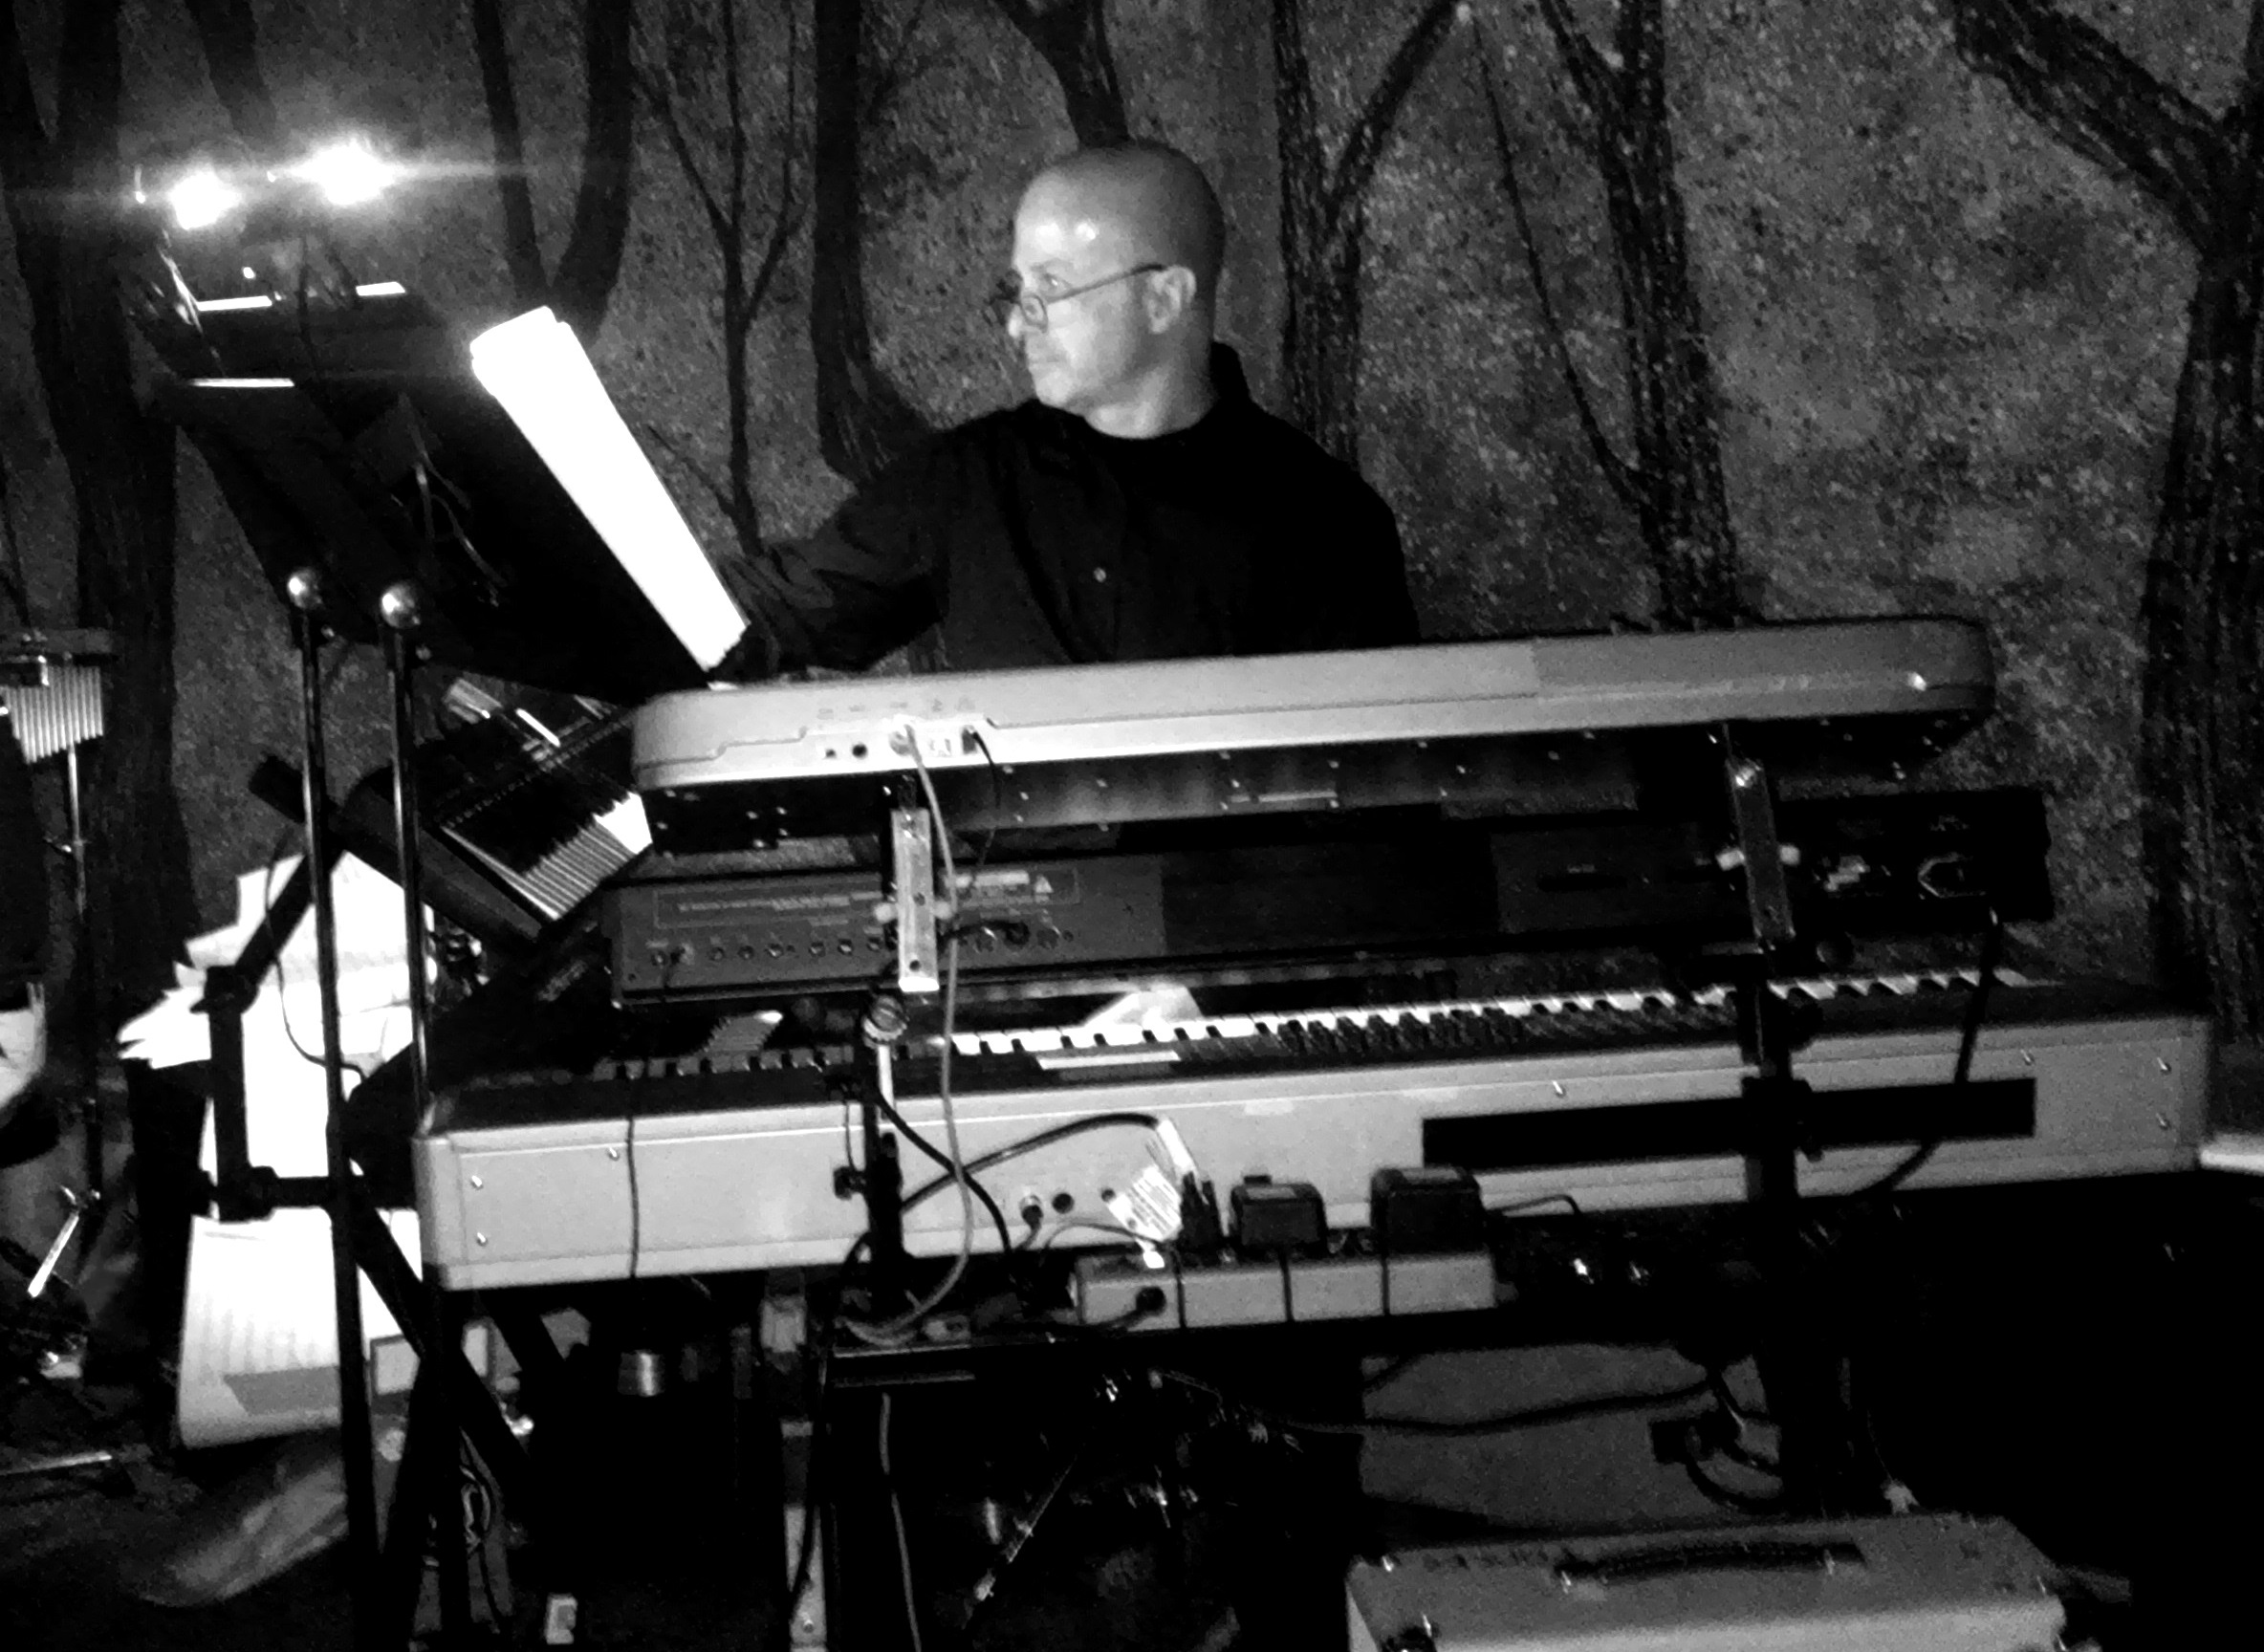 Allan Loucks live on keyboards